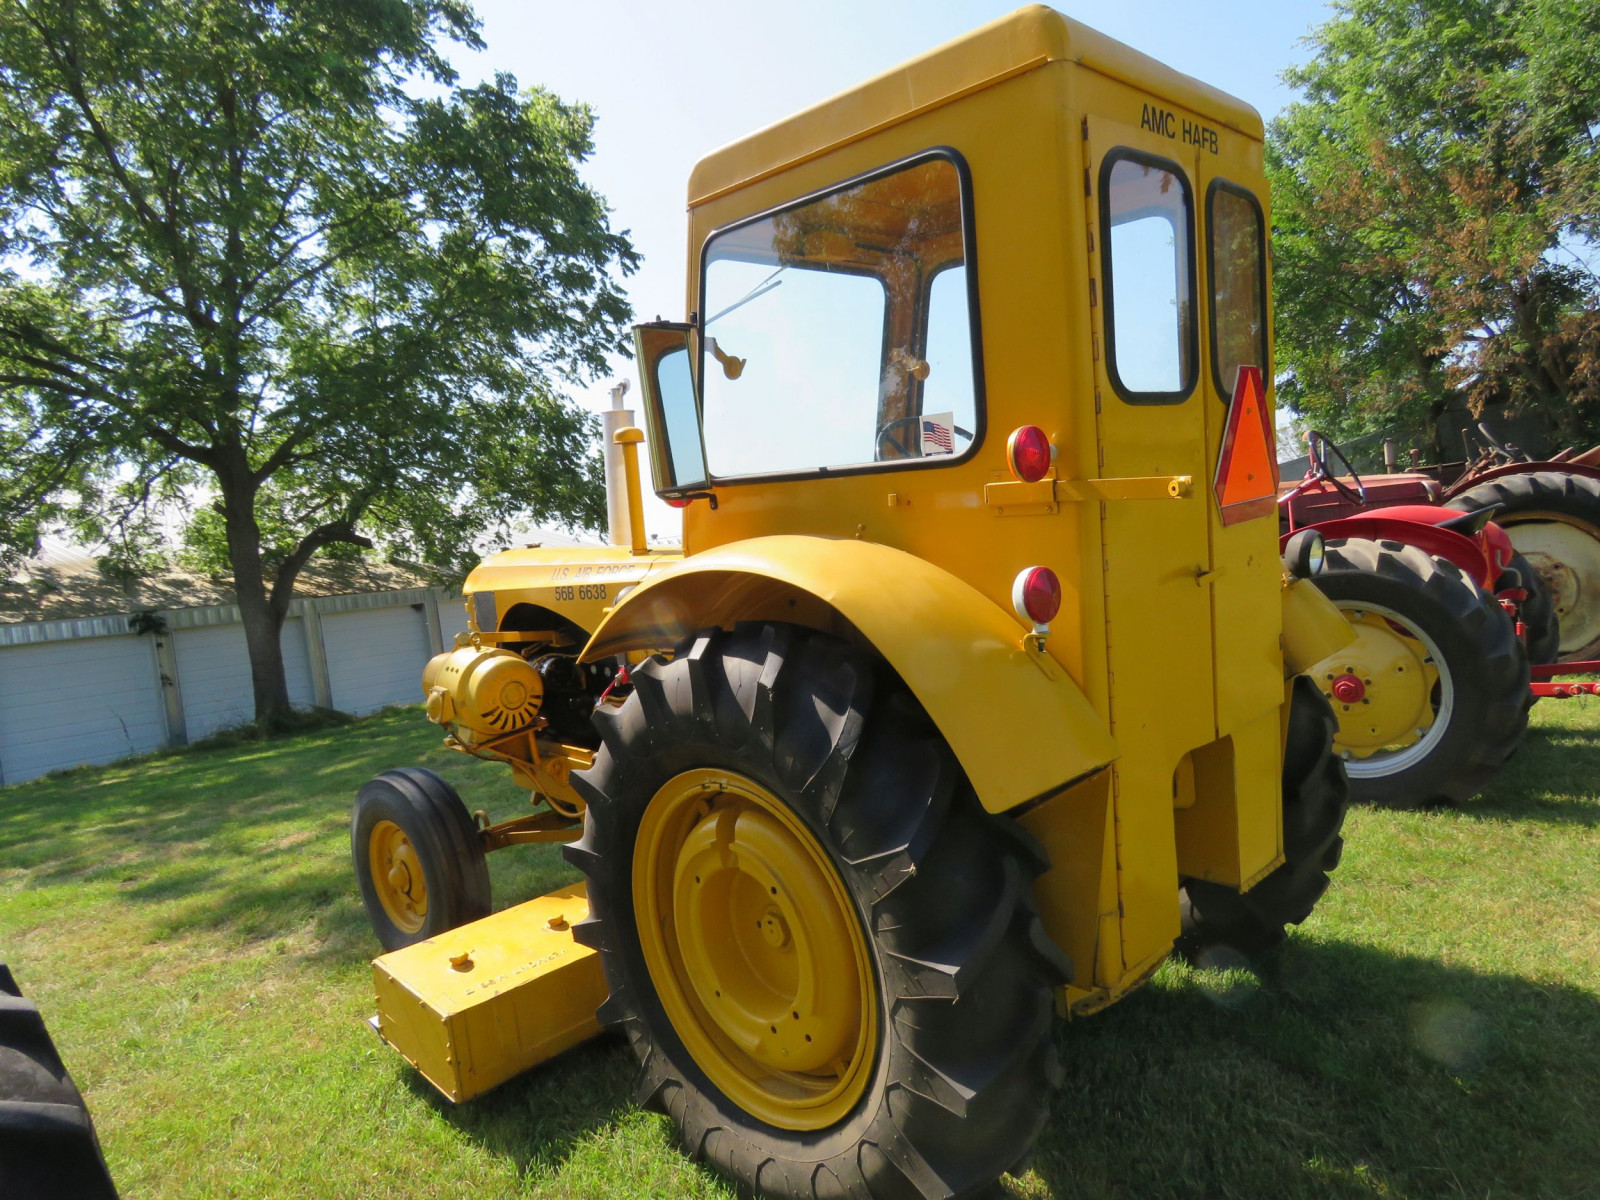 1956 Massey Harris 333 Tractor with Sabre Magnetic Sweeper - Image 11